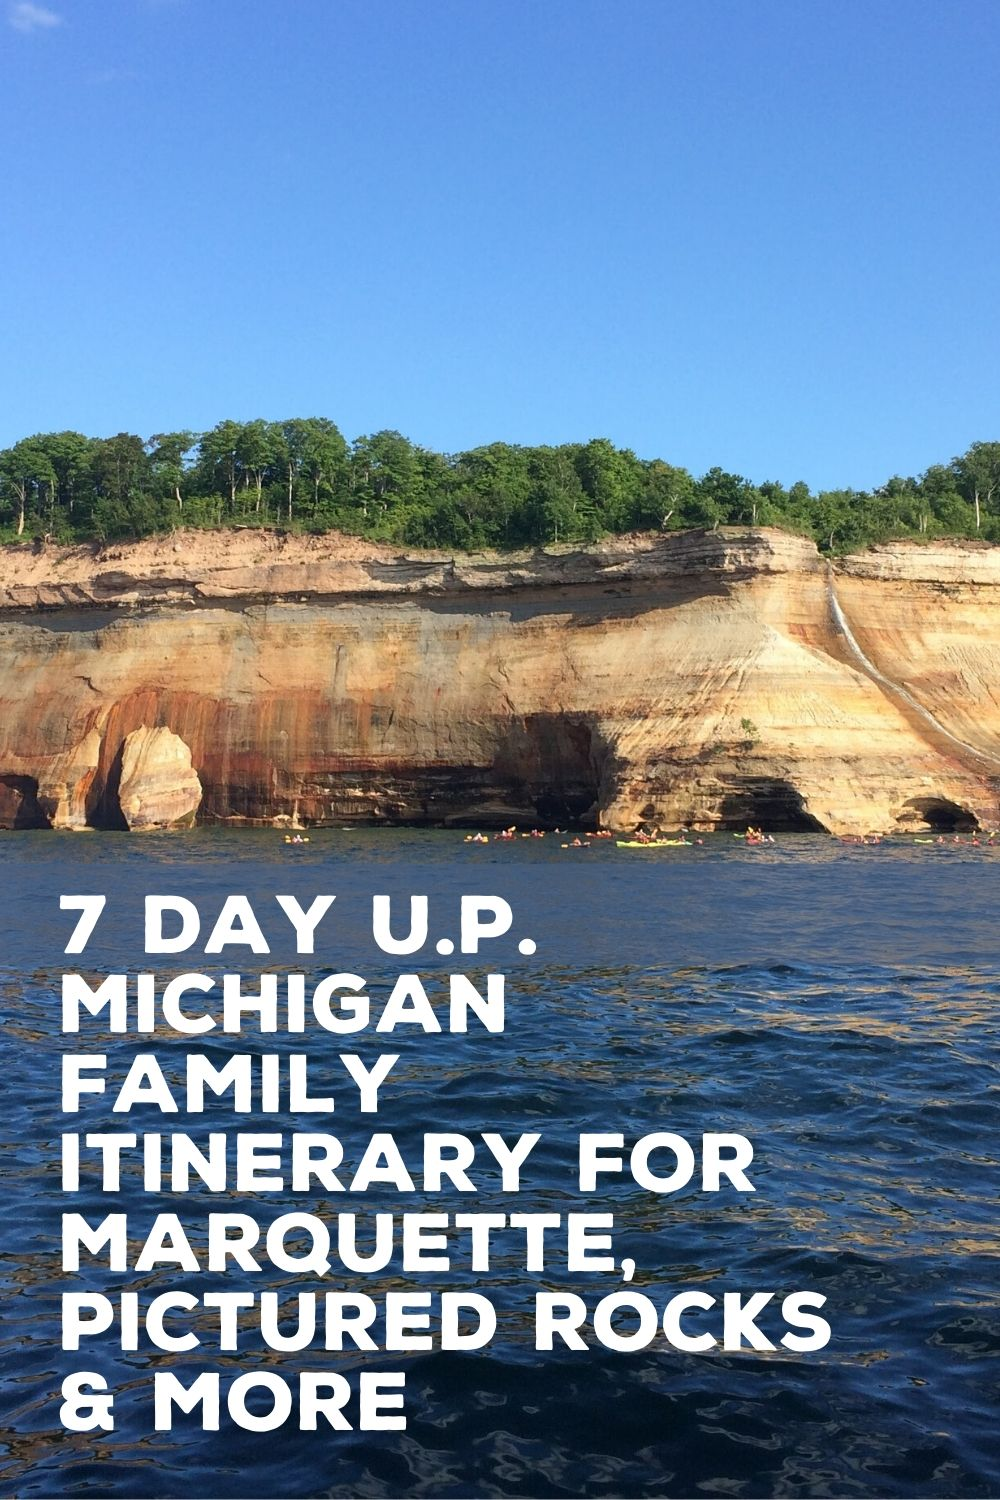 The Best 7 Day Upper Peninsula Michigan Itinerary Marquette Pictured Rocks With Kids More In 2020 Upper Peninsula Michigan Pictured Rocks Michigan Pictured Rocks National Lakeshore